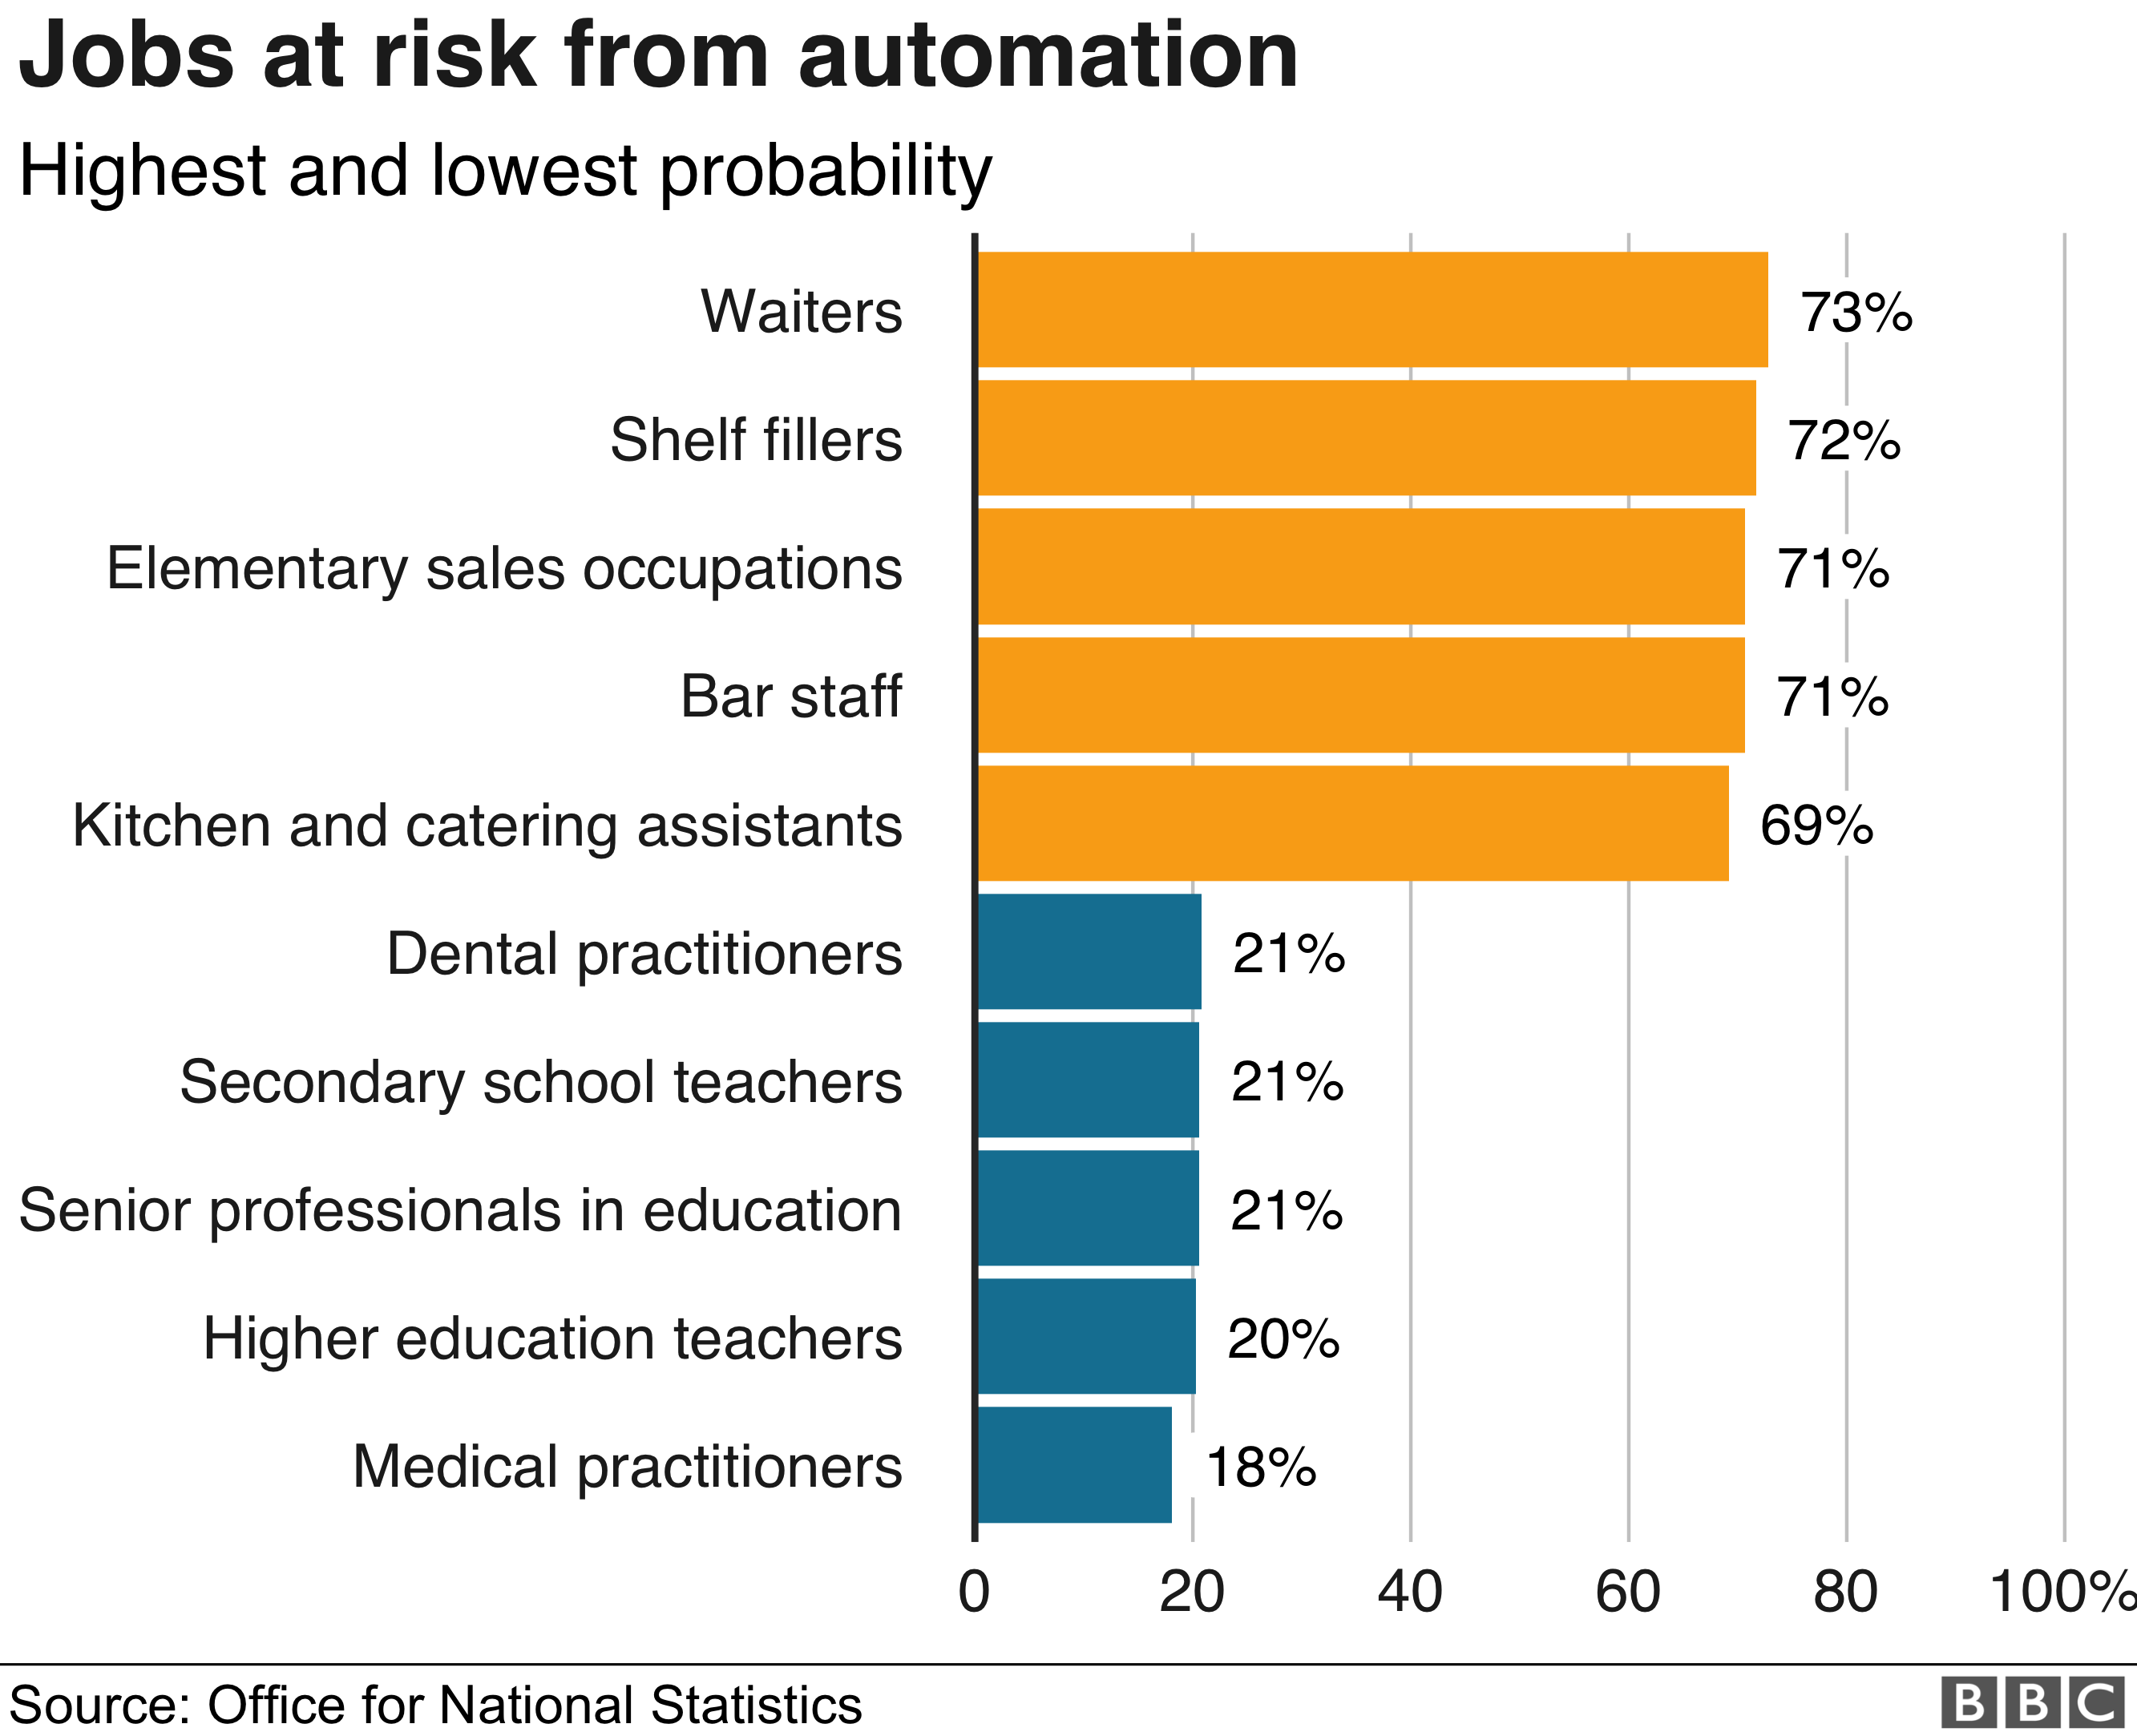 Automation could replace 1 5 million jobs, says ONS - BBC News